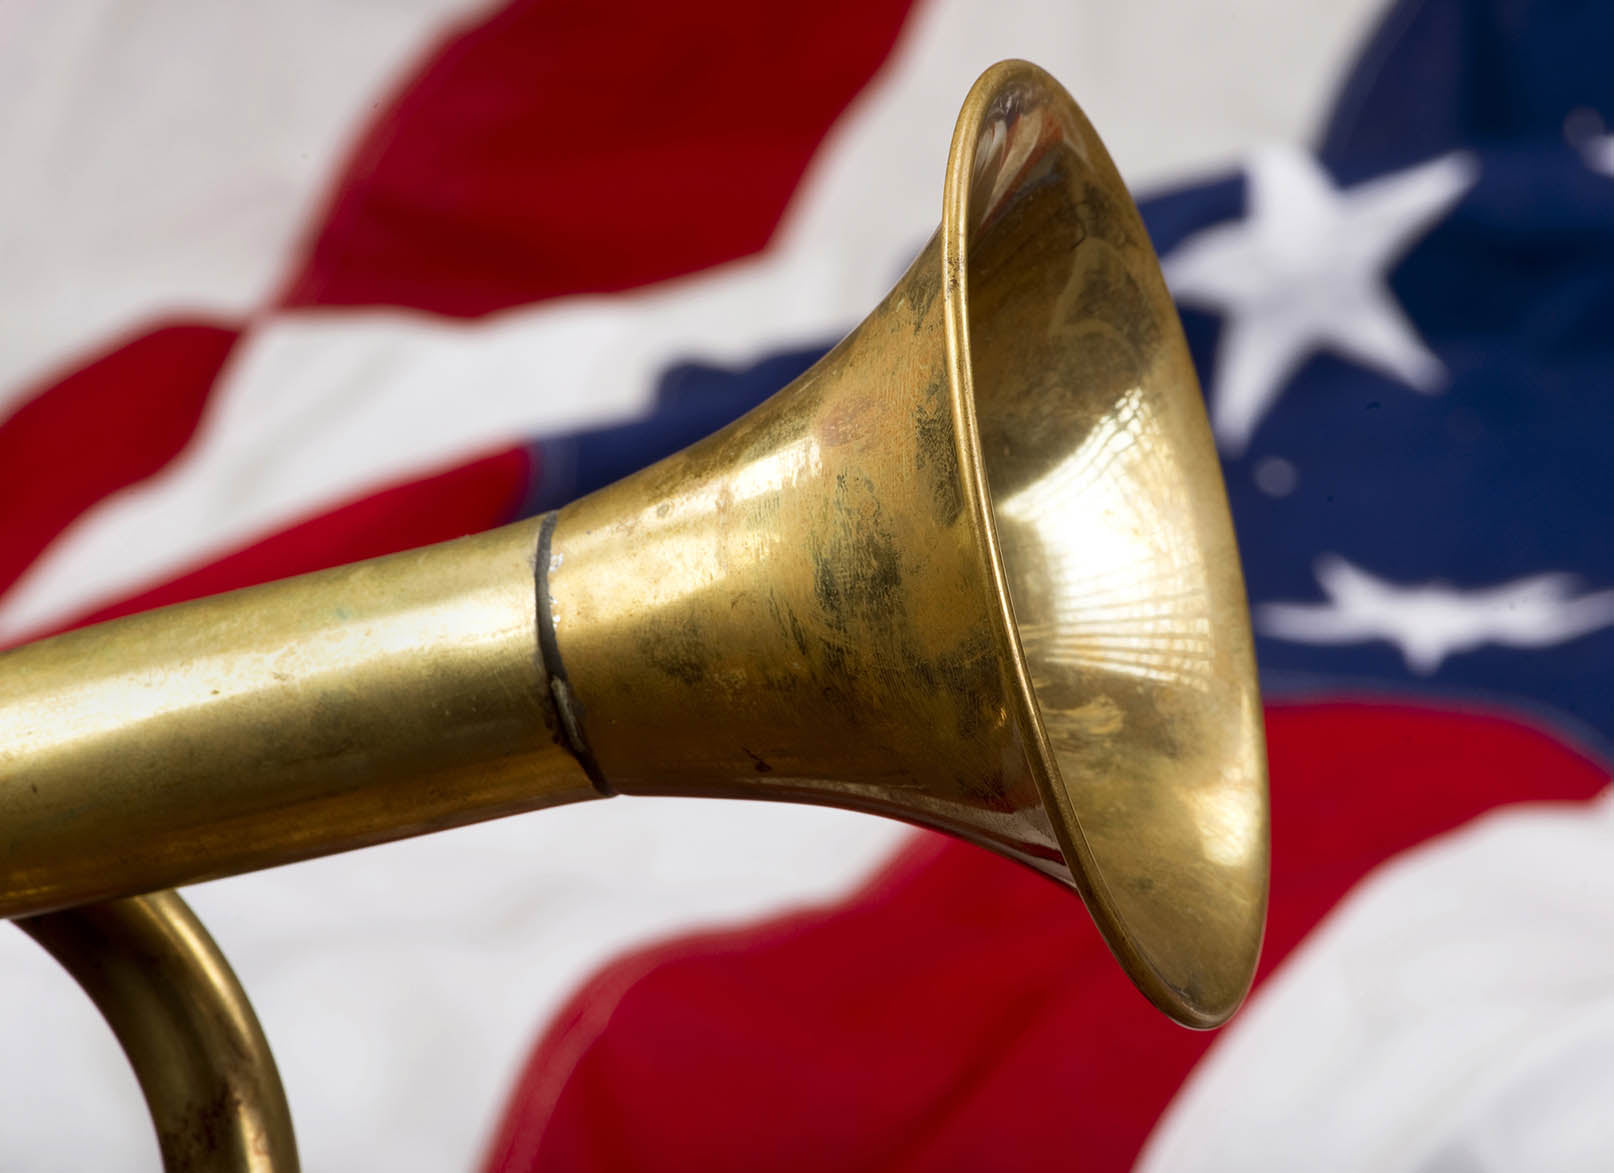 Trumpet and U.S.A. flag